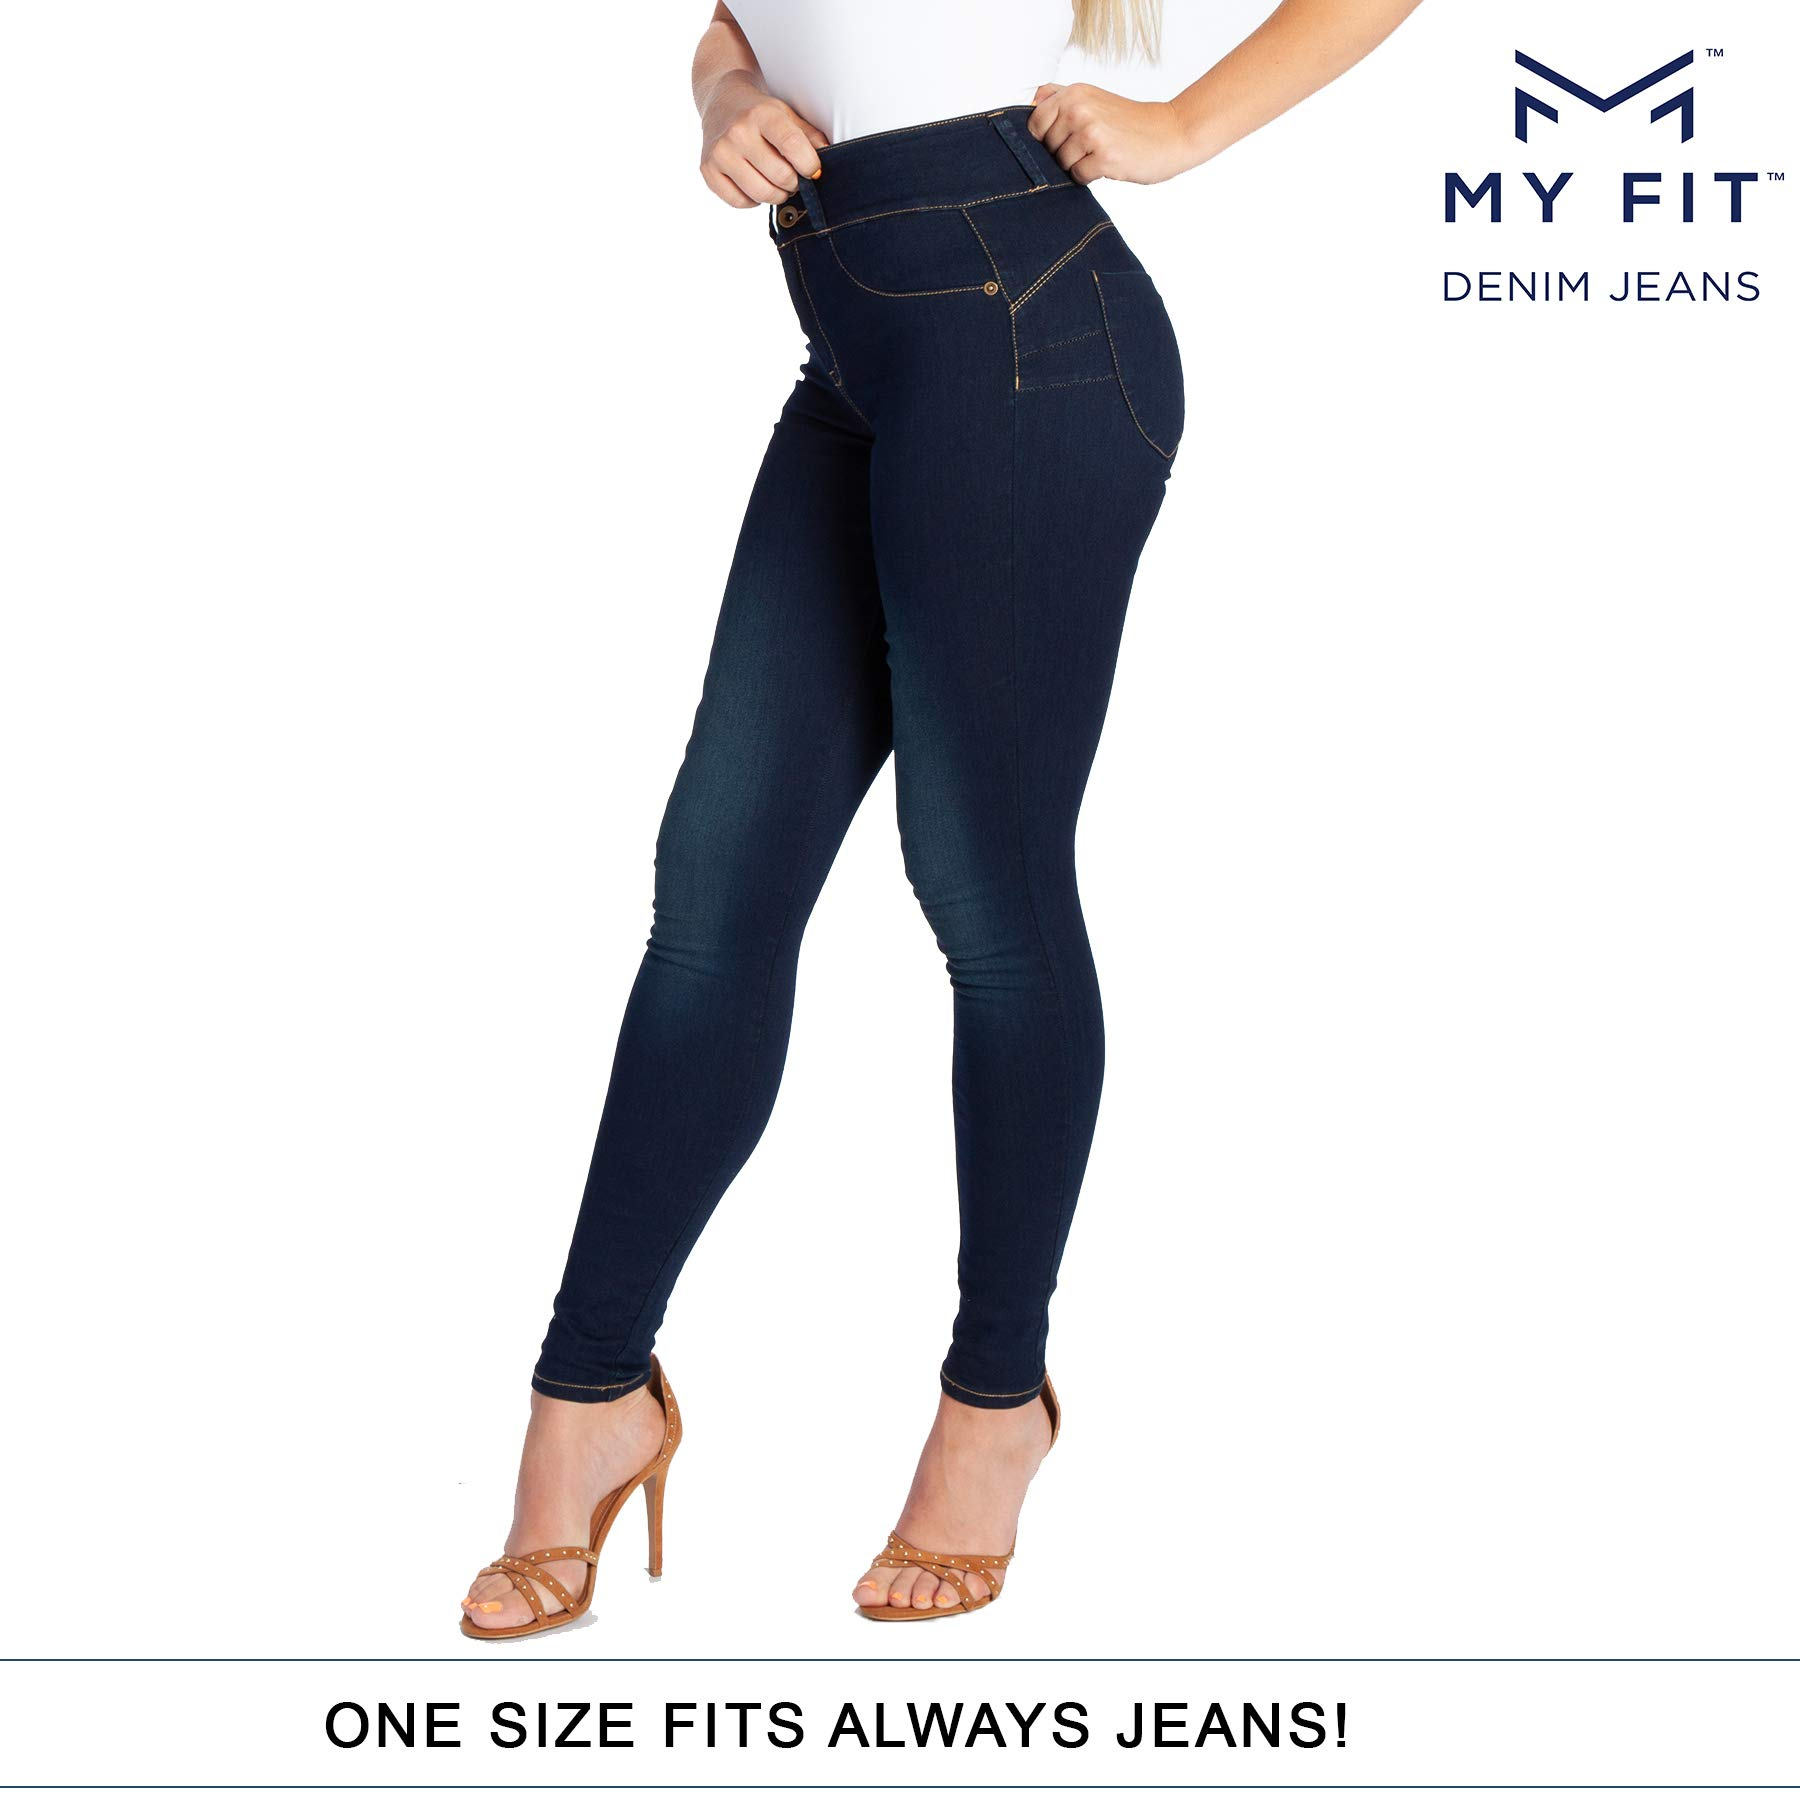 98d4887fcd0 Amazon.com  My Fit Jeans- SIZE 14-20 LIGHT WASH  Women s Stretch ...